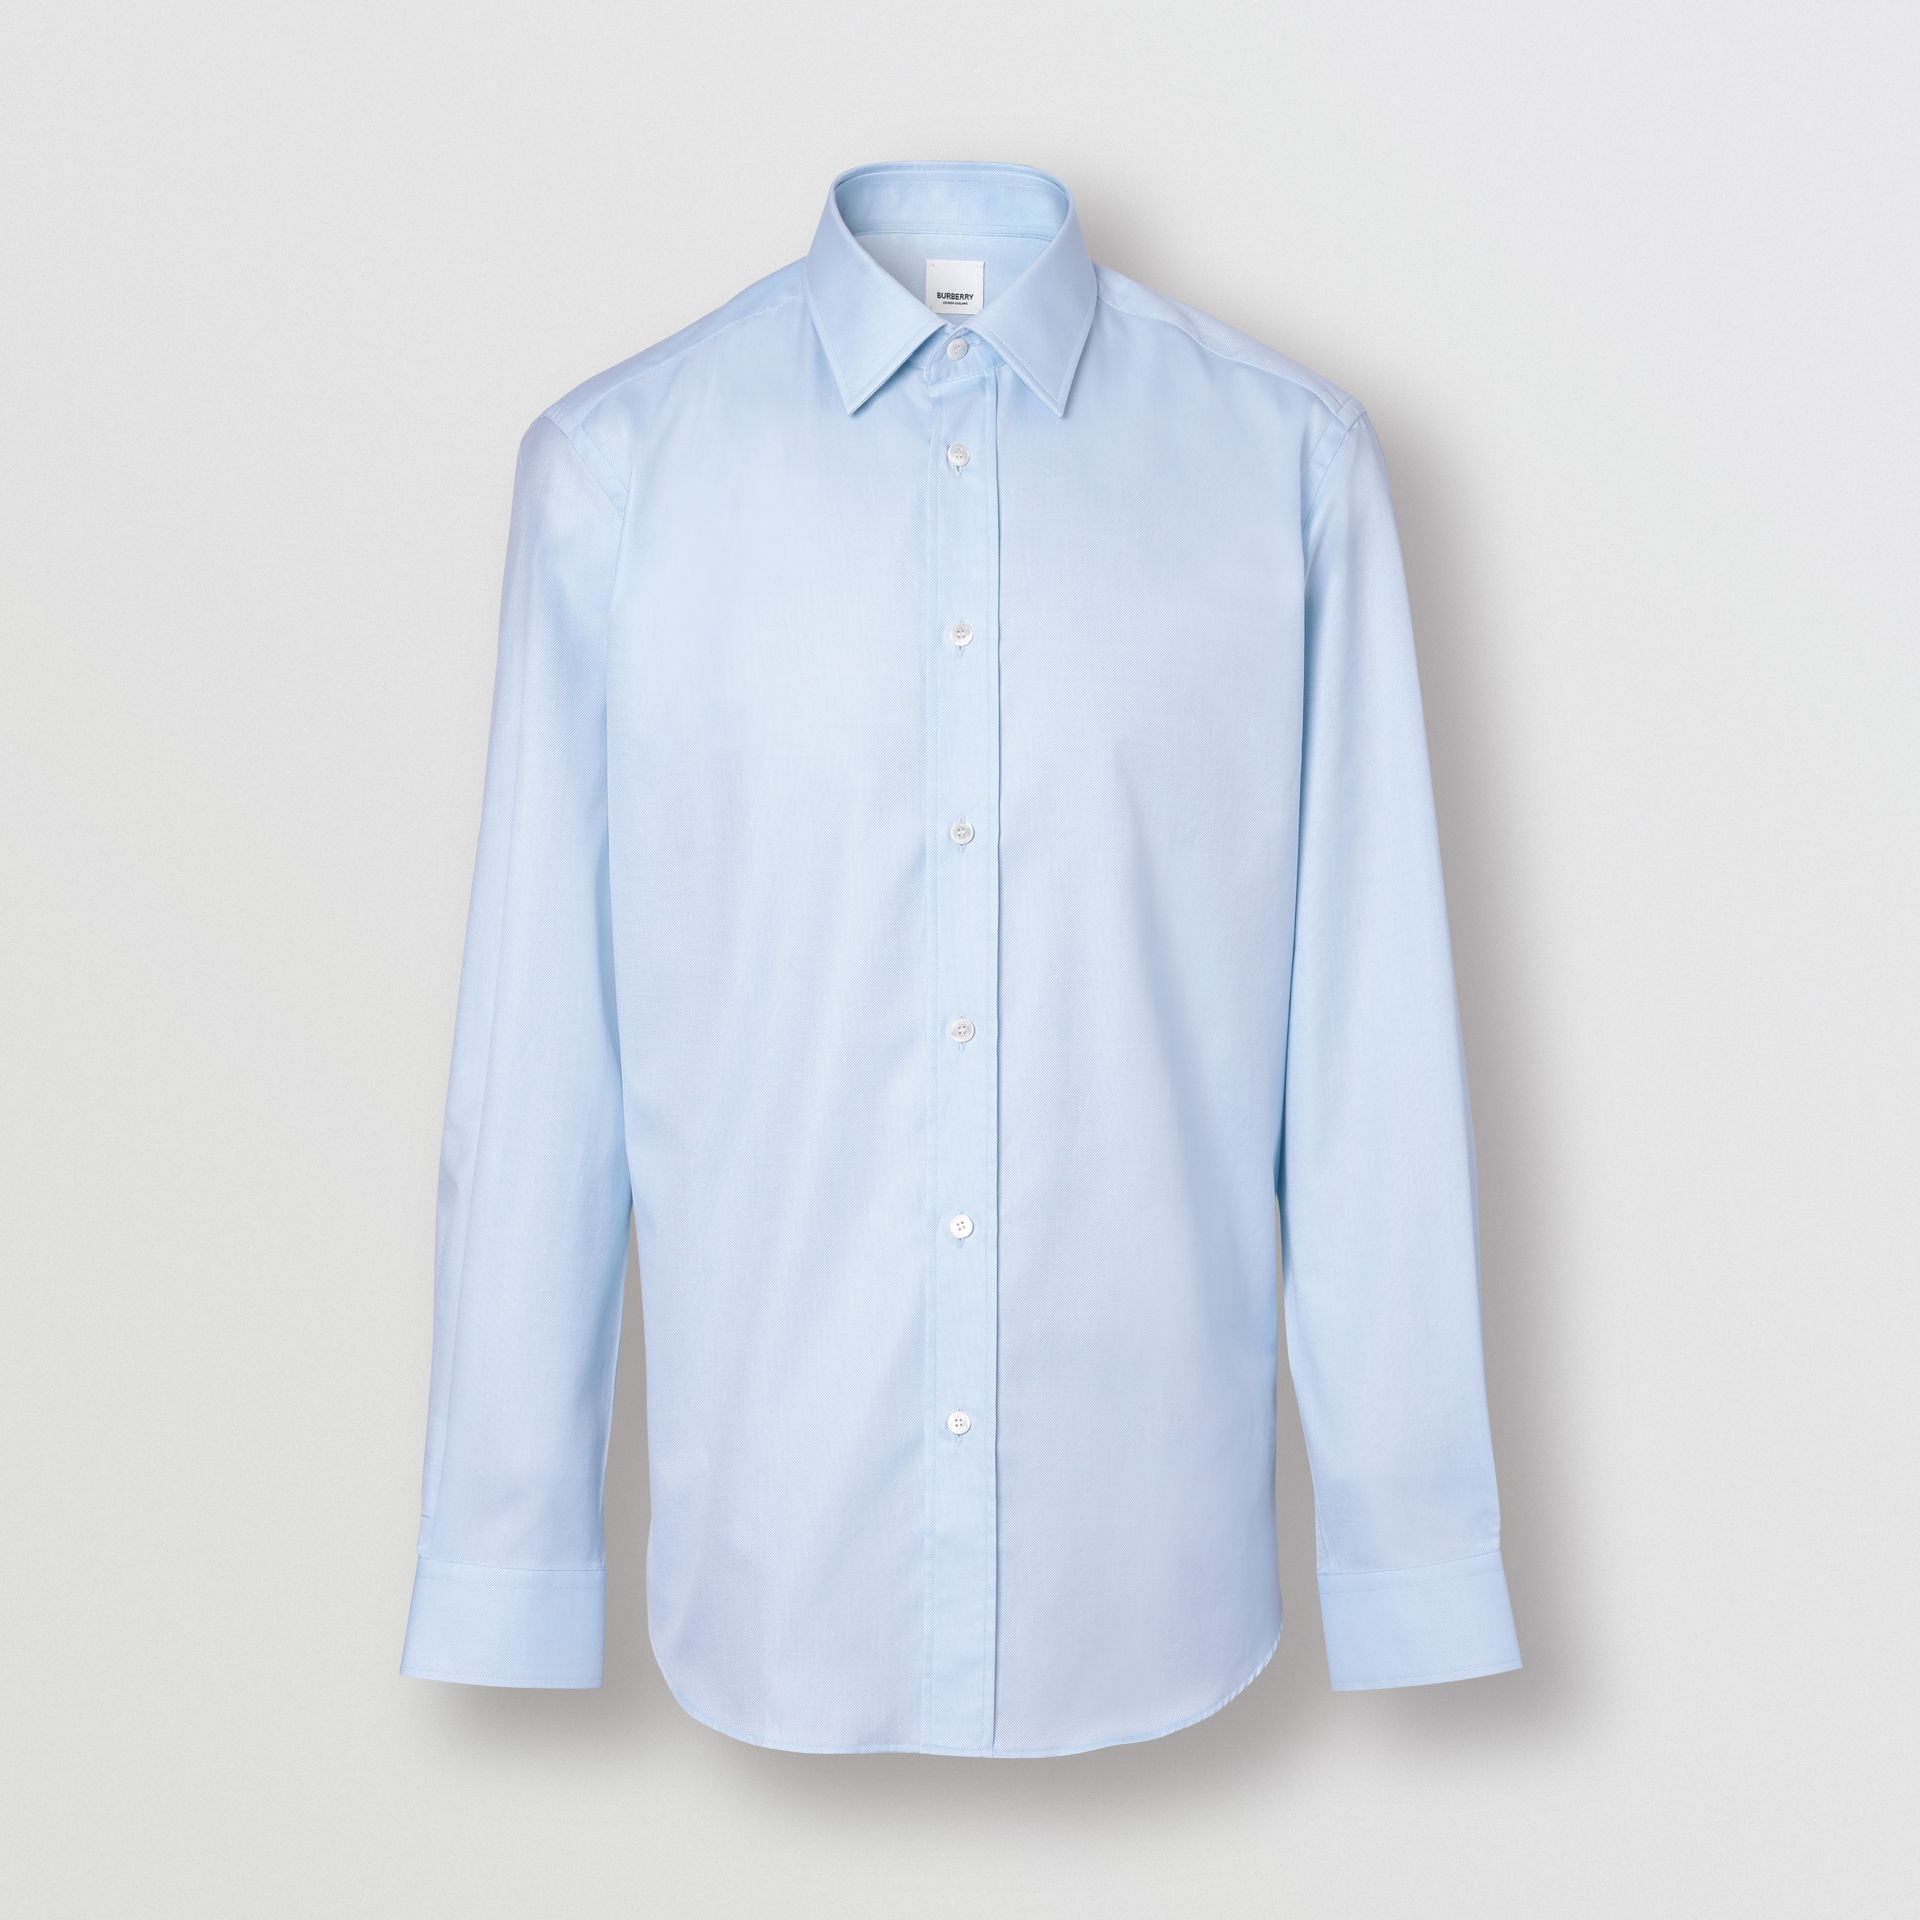 Slim Fit Monogram Motif Cotton Poplin Shirt in Pale Blue - Men | Burberry - gallery image 3